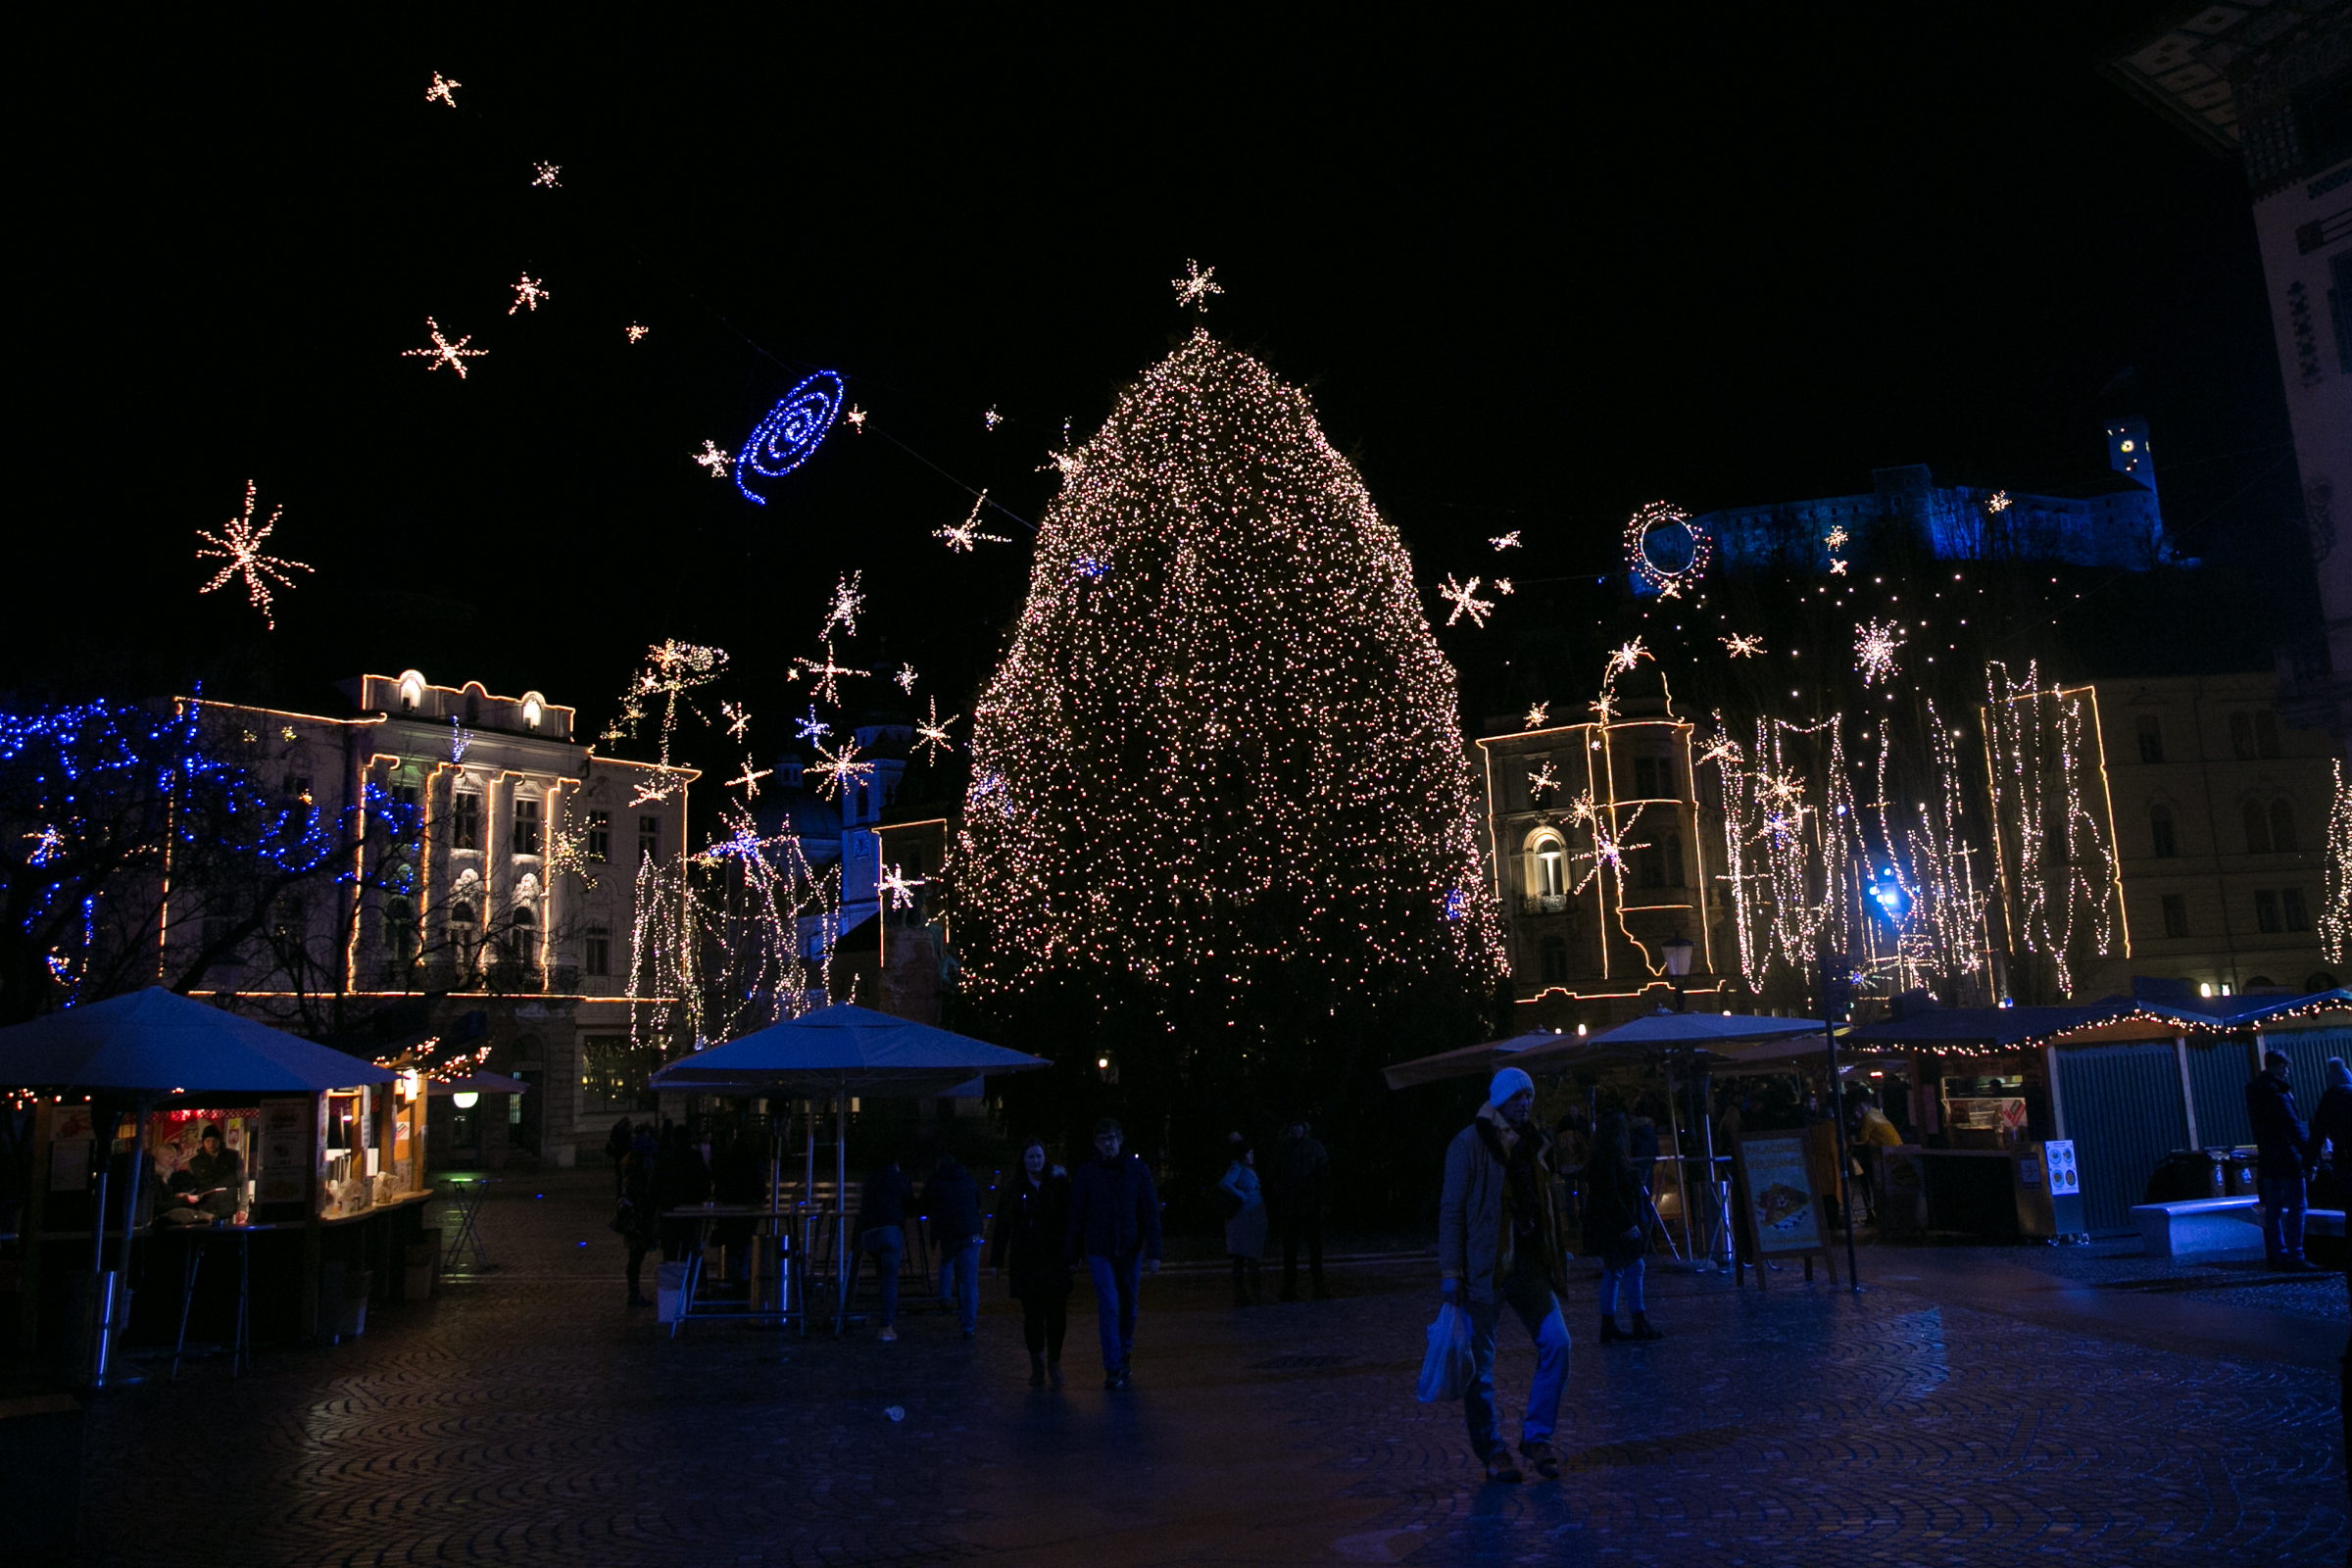 new-year-in-ljubljana-slovenia-europe-eu-slo-minas-planet-jasmina-haskovic6.jpg